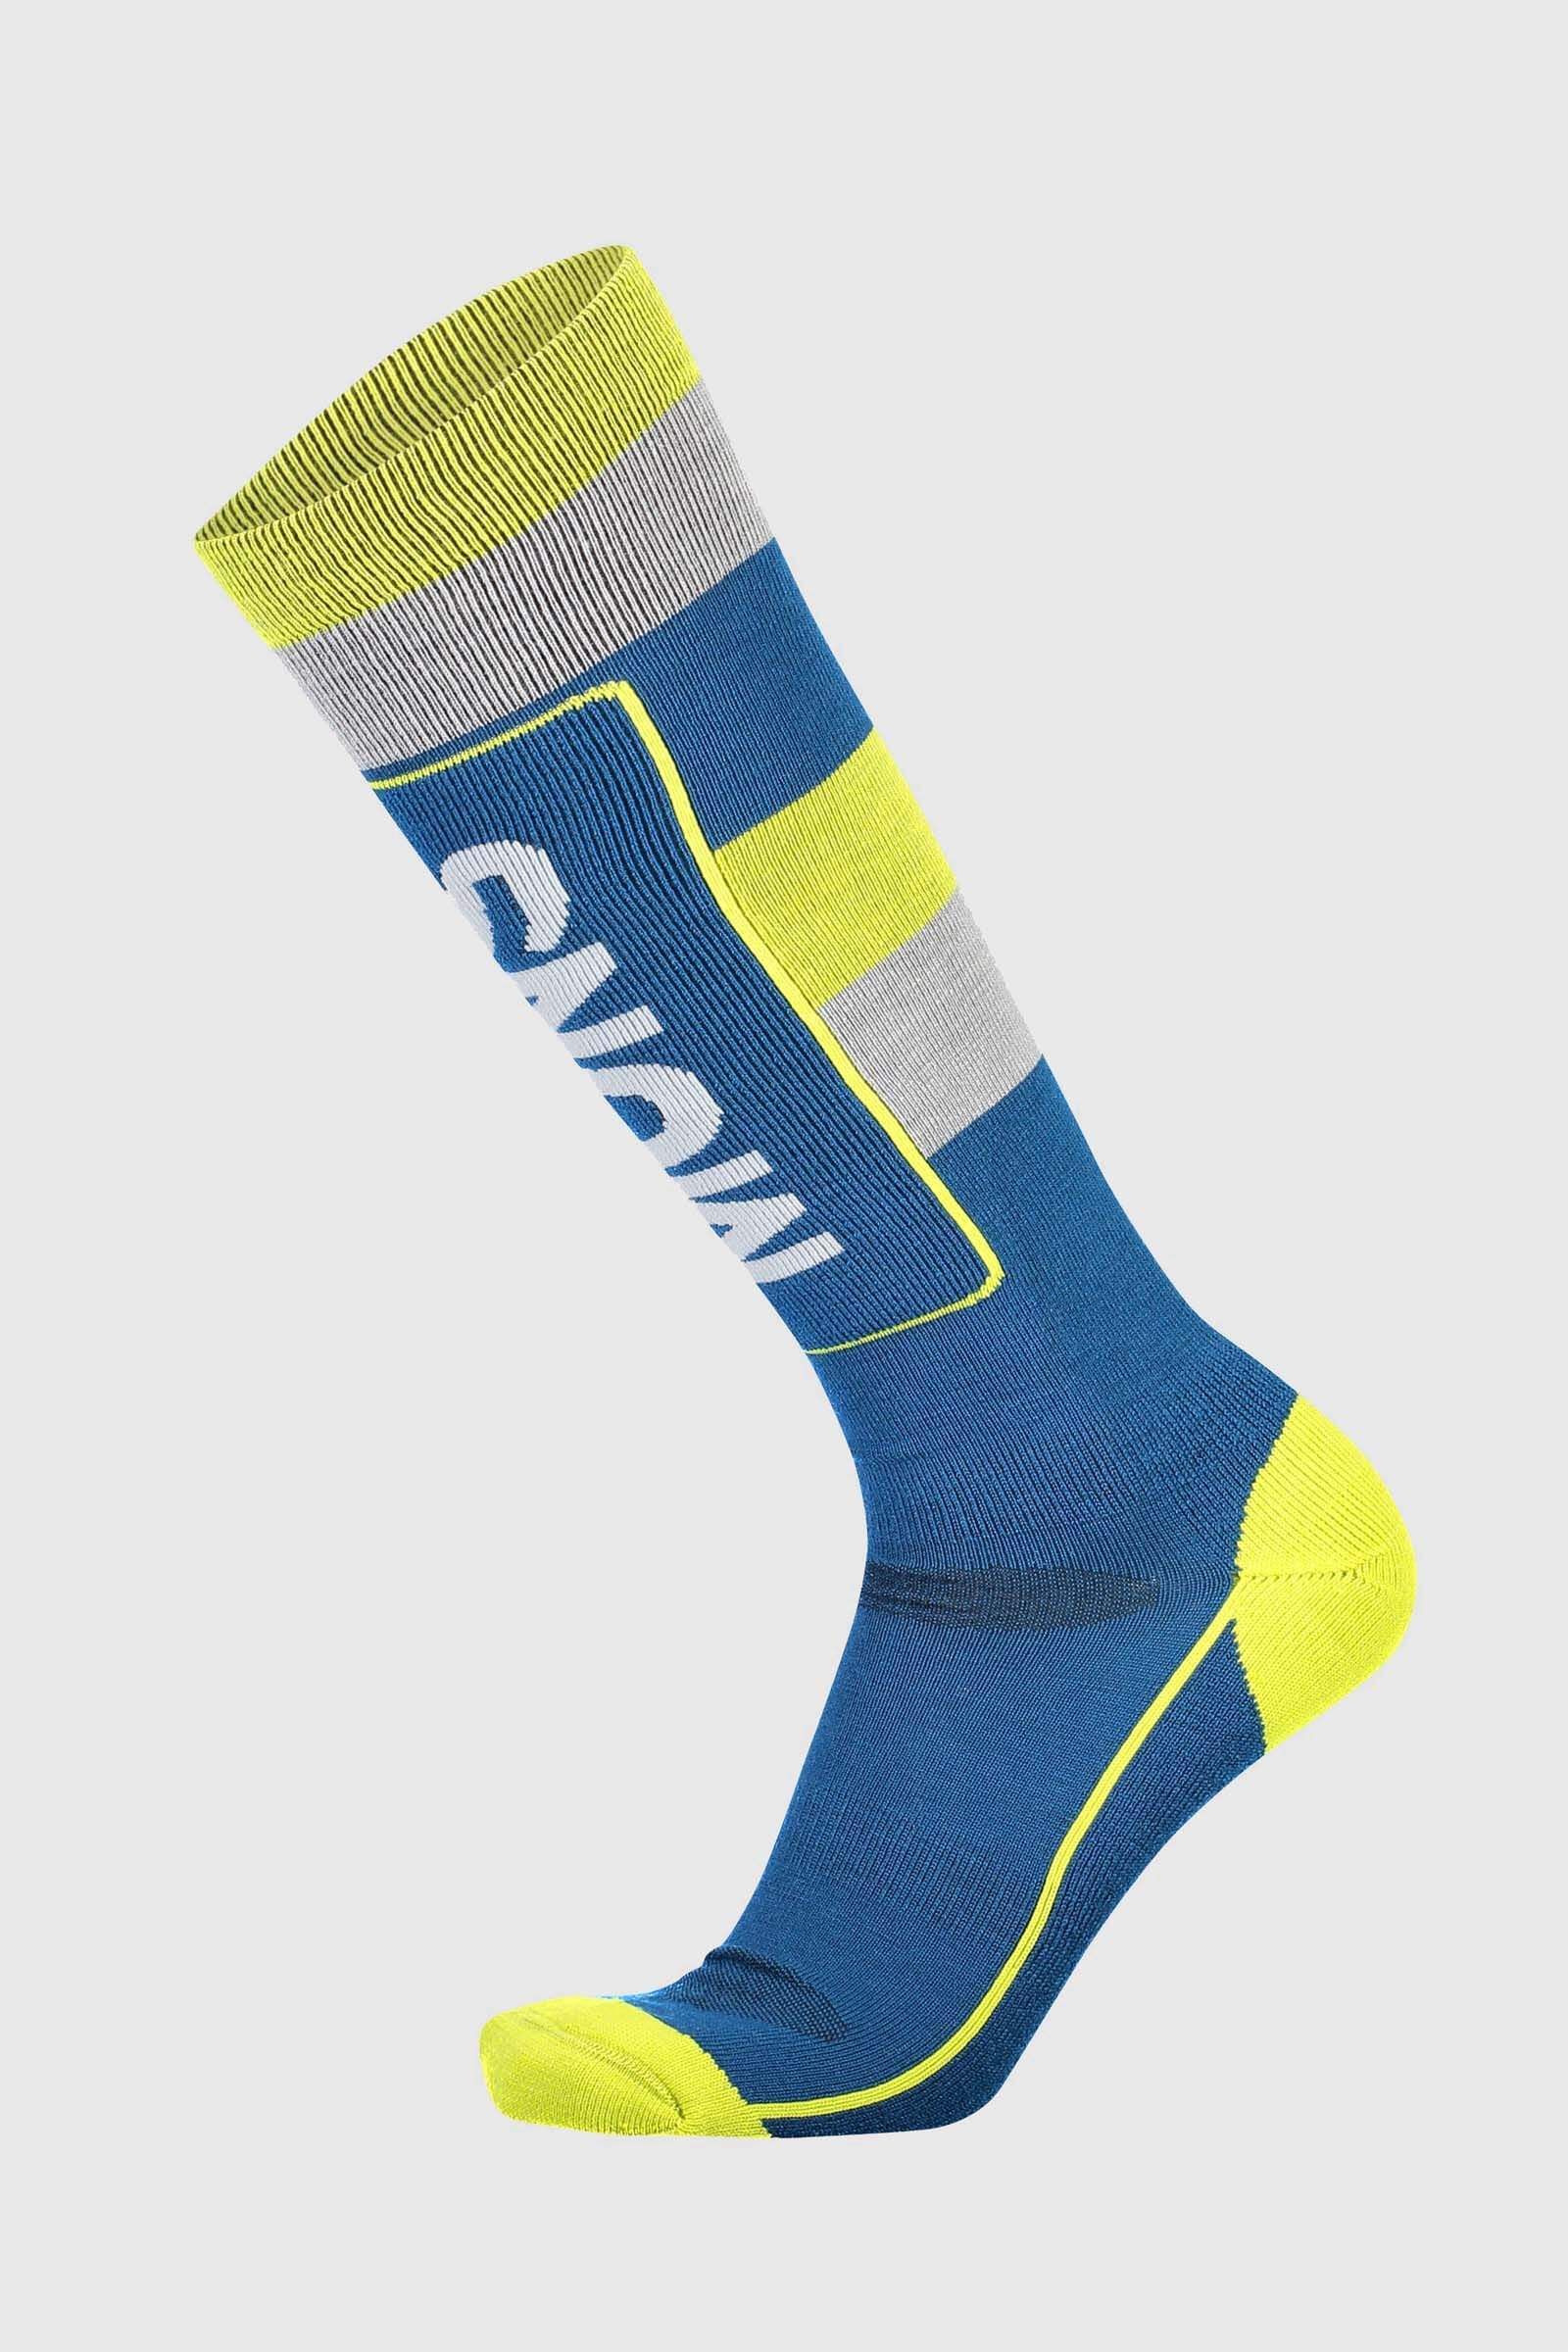 Mons Tech Cushion Sock - Oily Blue / Grey / Citrus